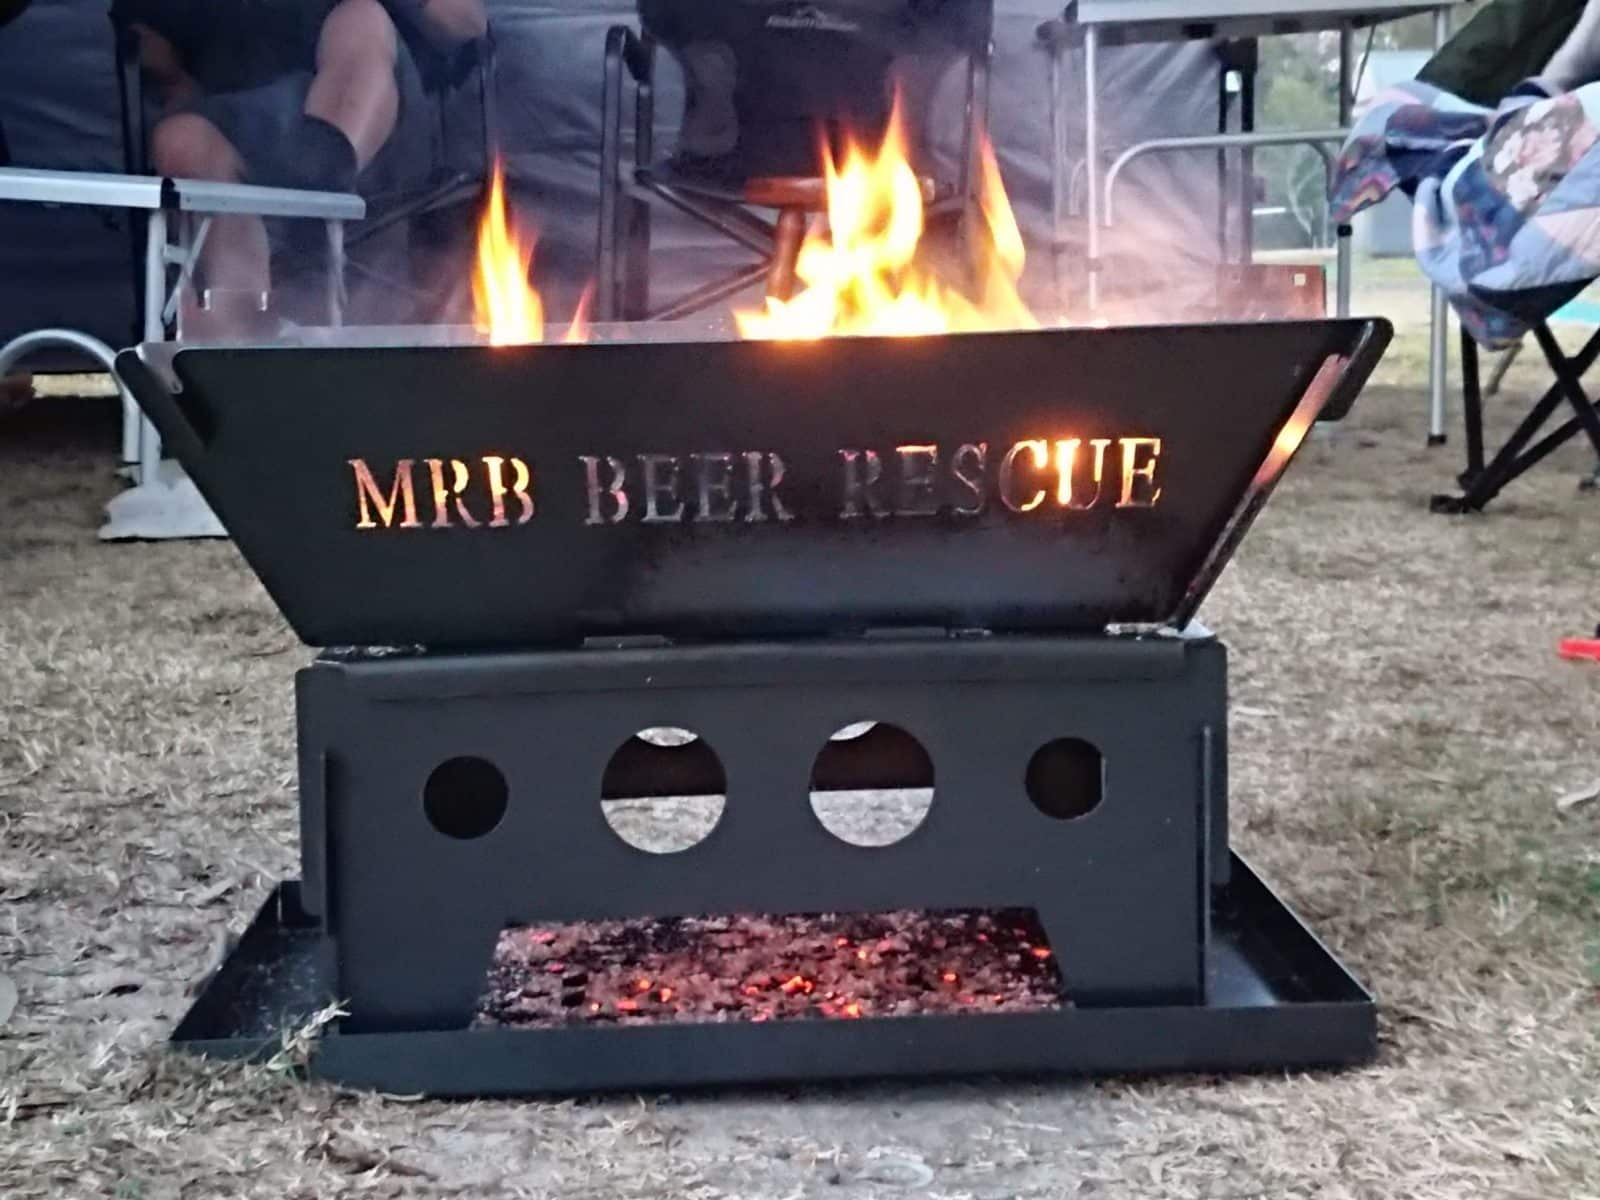 Fire Pit Gallery - https://www.topendcampgear.com.au/wp-content/uploads/2019/04/OL-Mate.jpeg